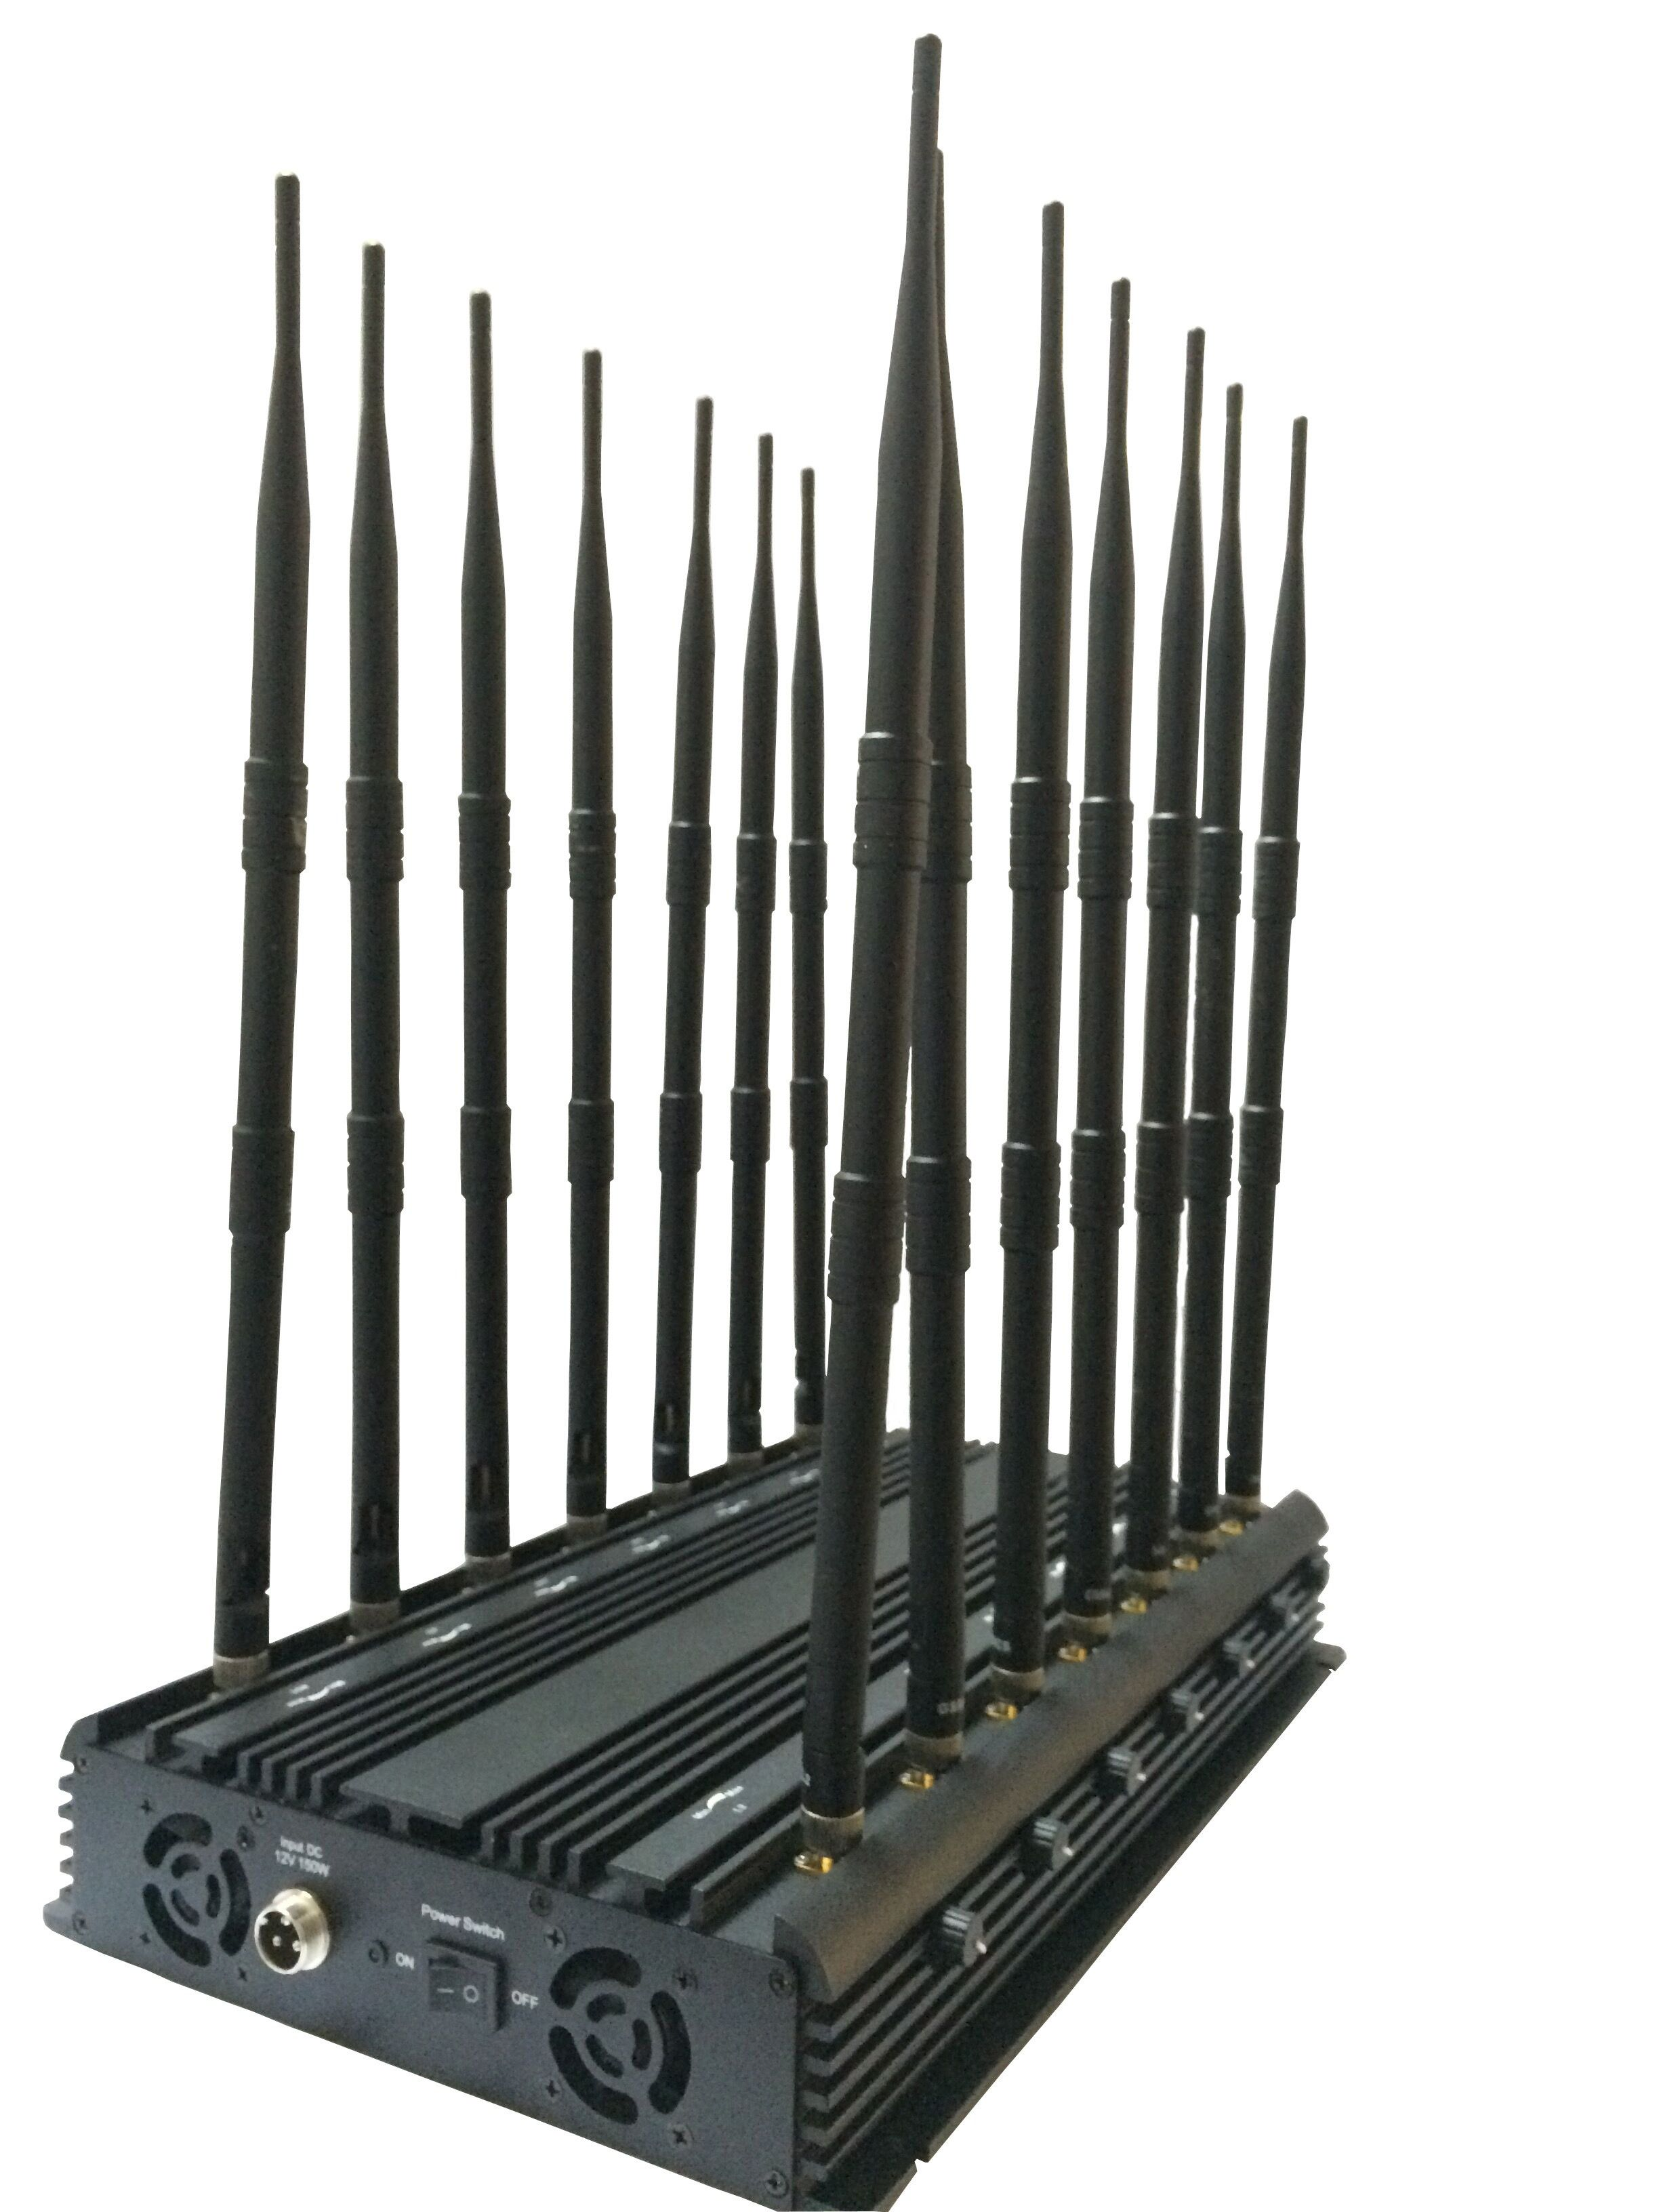 Cell Phone Jammer >> All Bands Powerful Cell Phone Jammer For Sale 14 Antennas Cell Phone